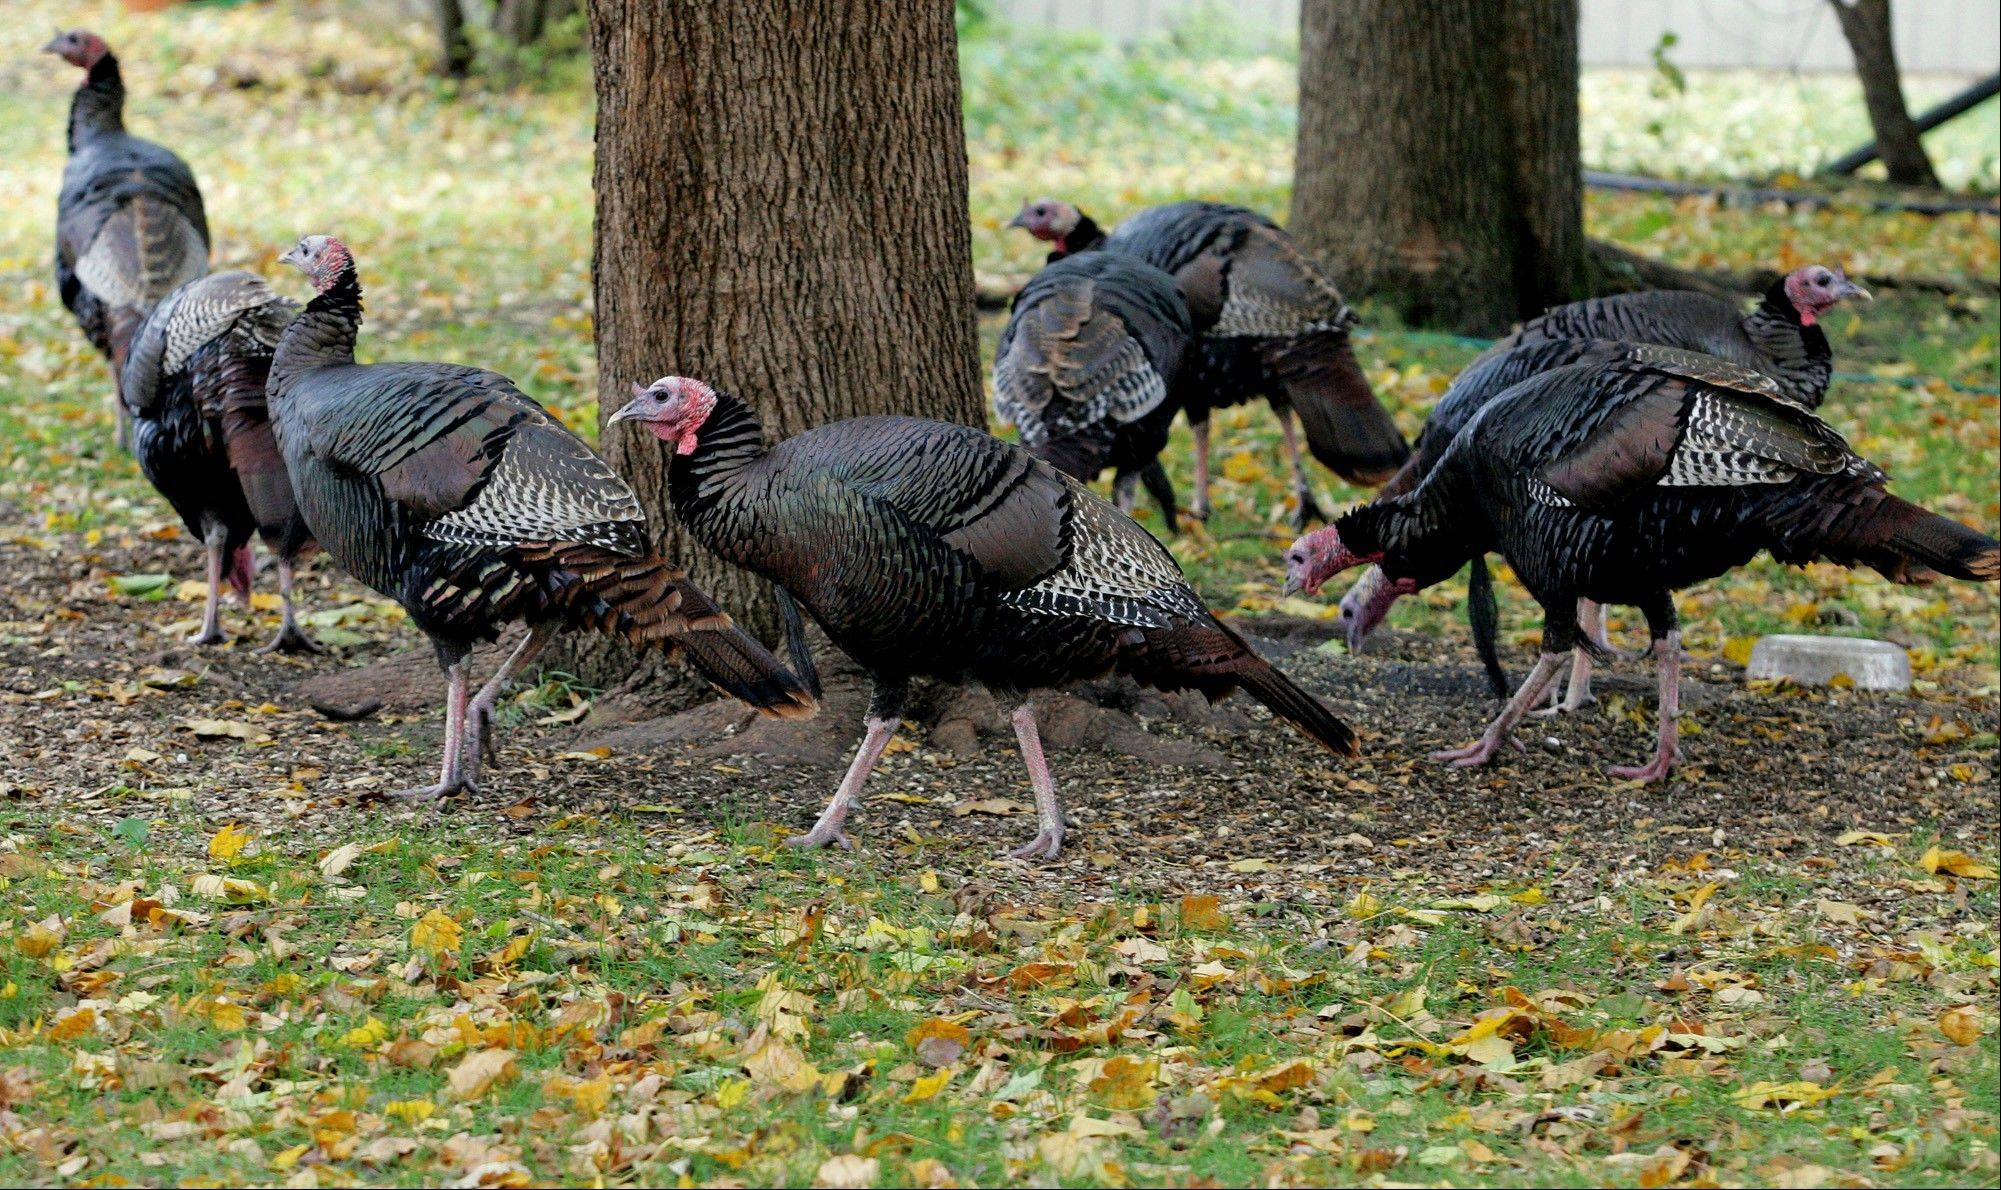 Wild turkeys forage for food in Rockford.